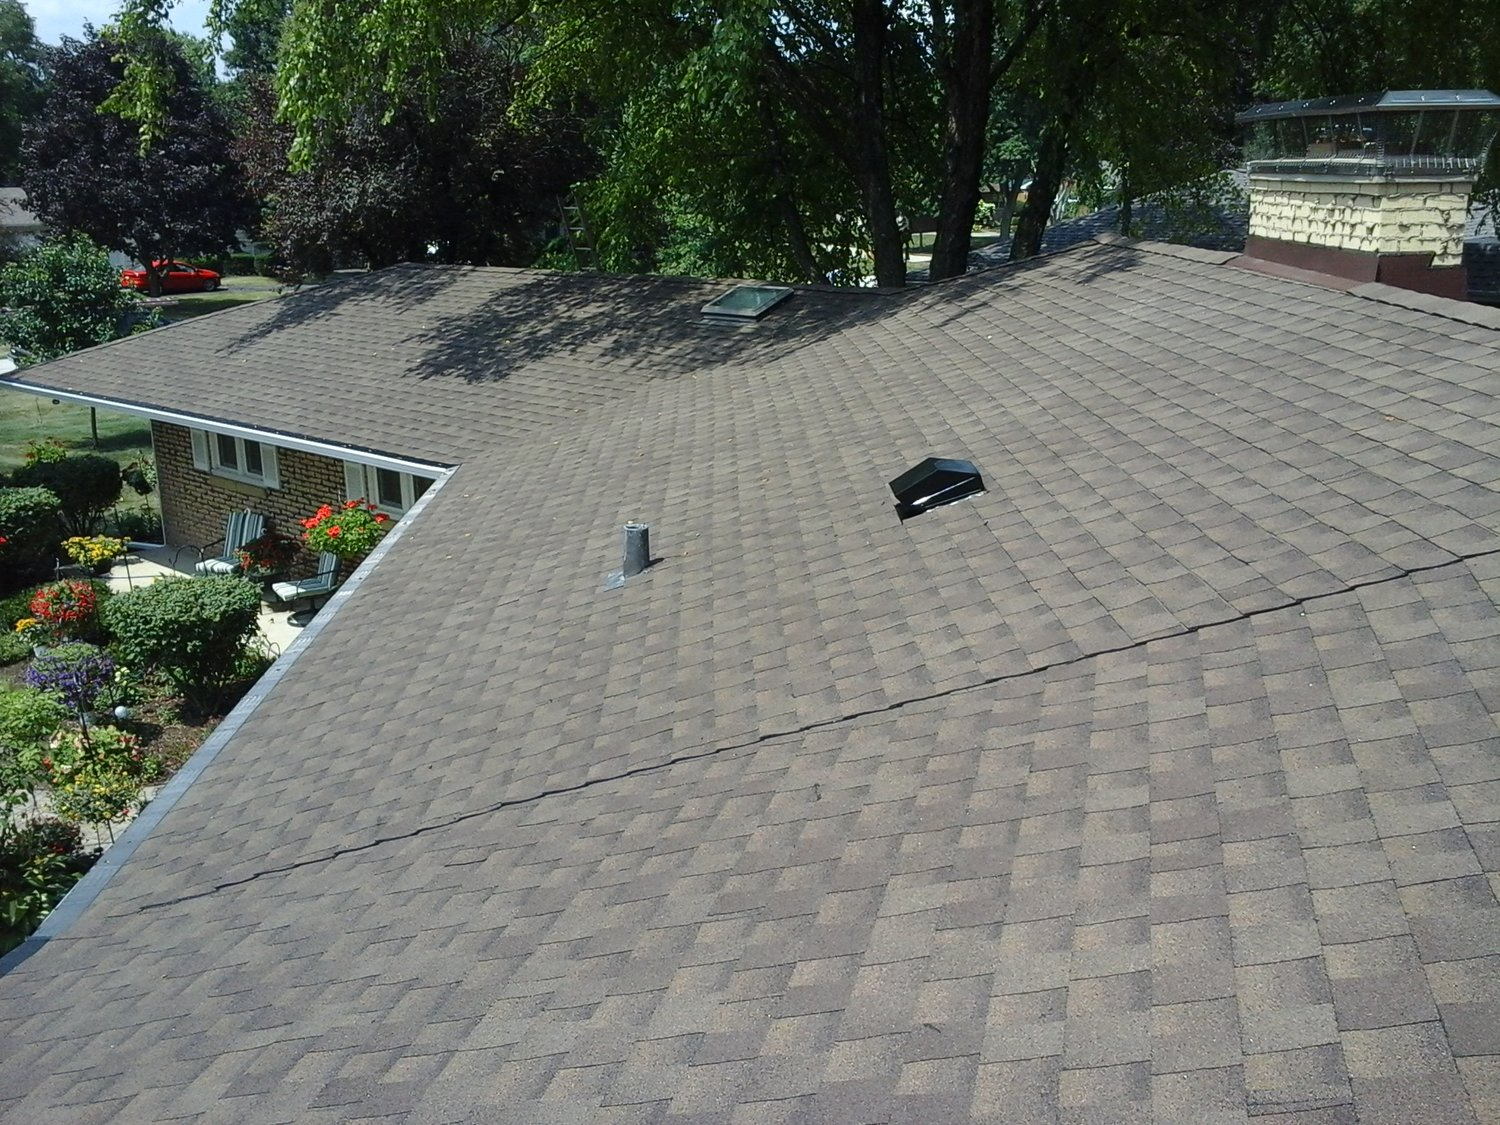 Residential Low Slope Services - Do you have a low slope roof? We have helped thousands of local homeowners with evaluating, installing, maintaining and providing warranties for complete roofing solutions. We're the roofers you can depend on for long term peace of mind through: wind, rain, and snow. For a FREE Estimate - Call: (630) 530-5944